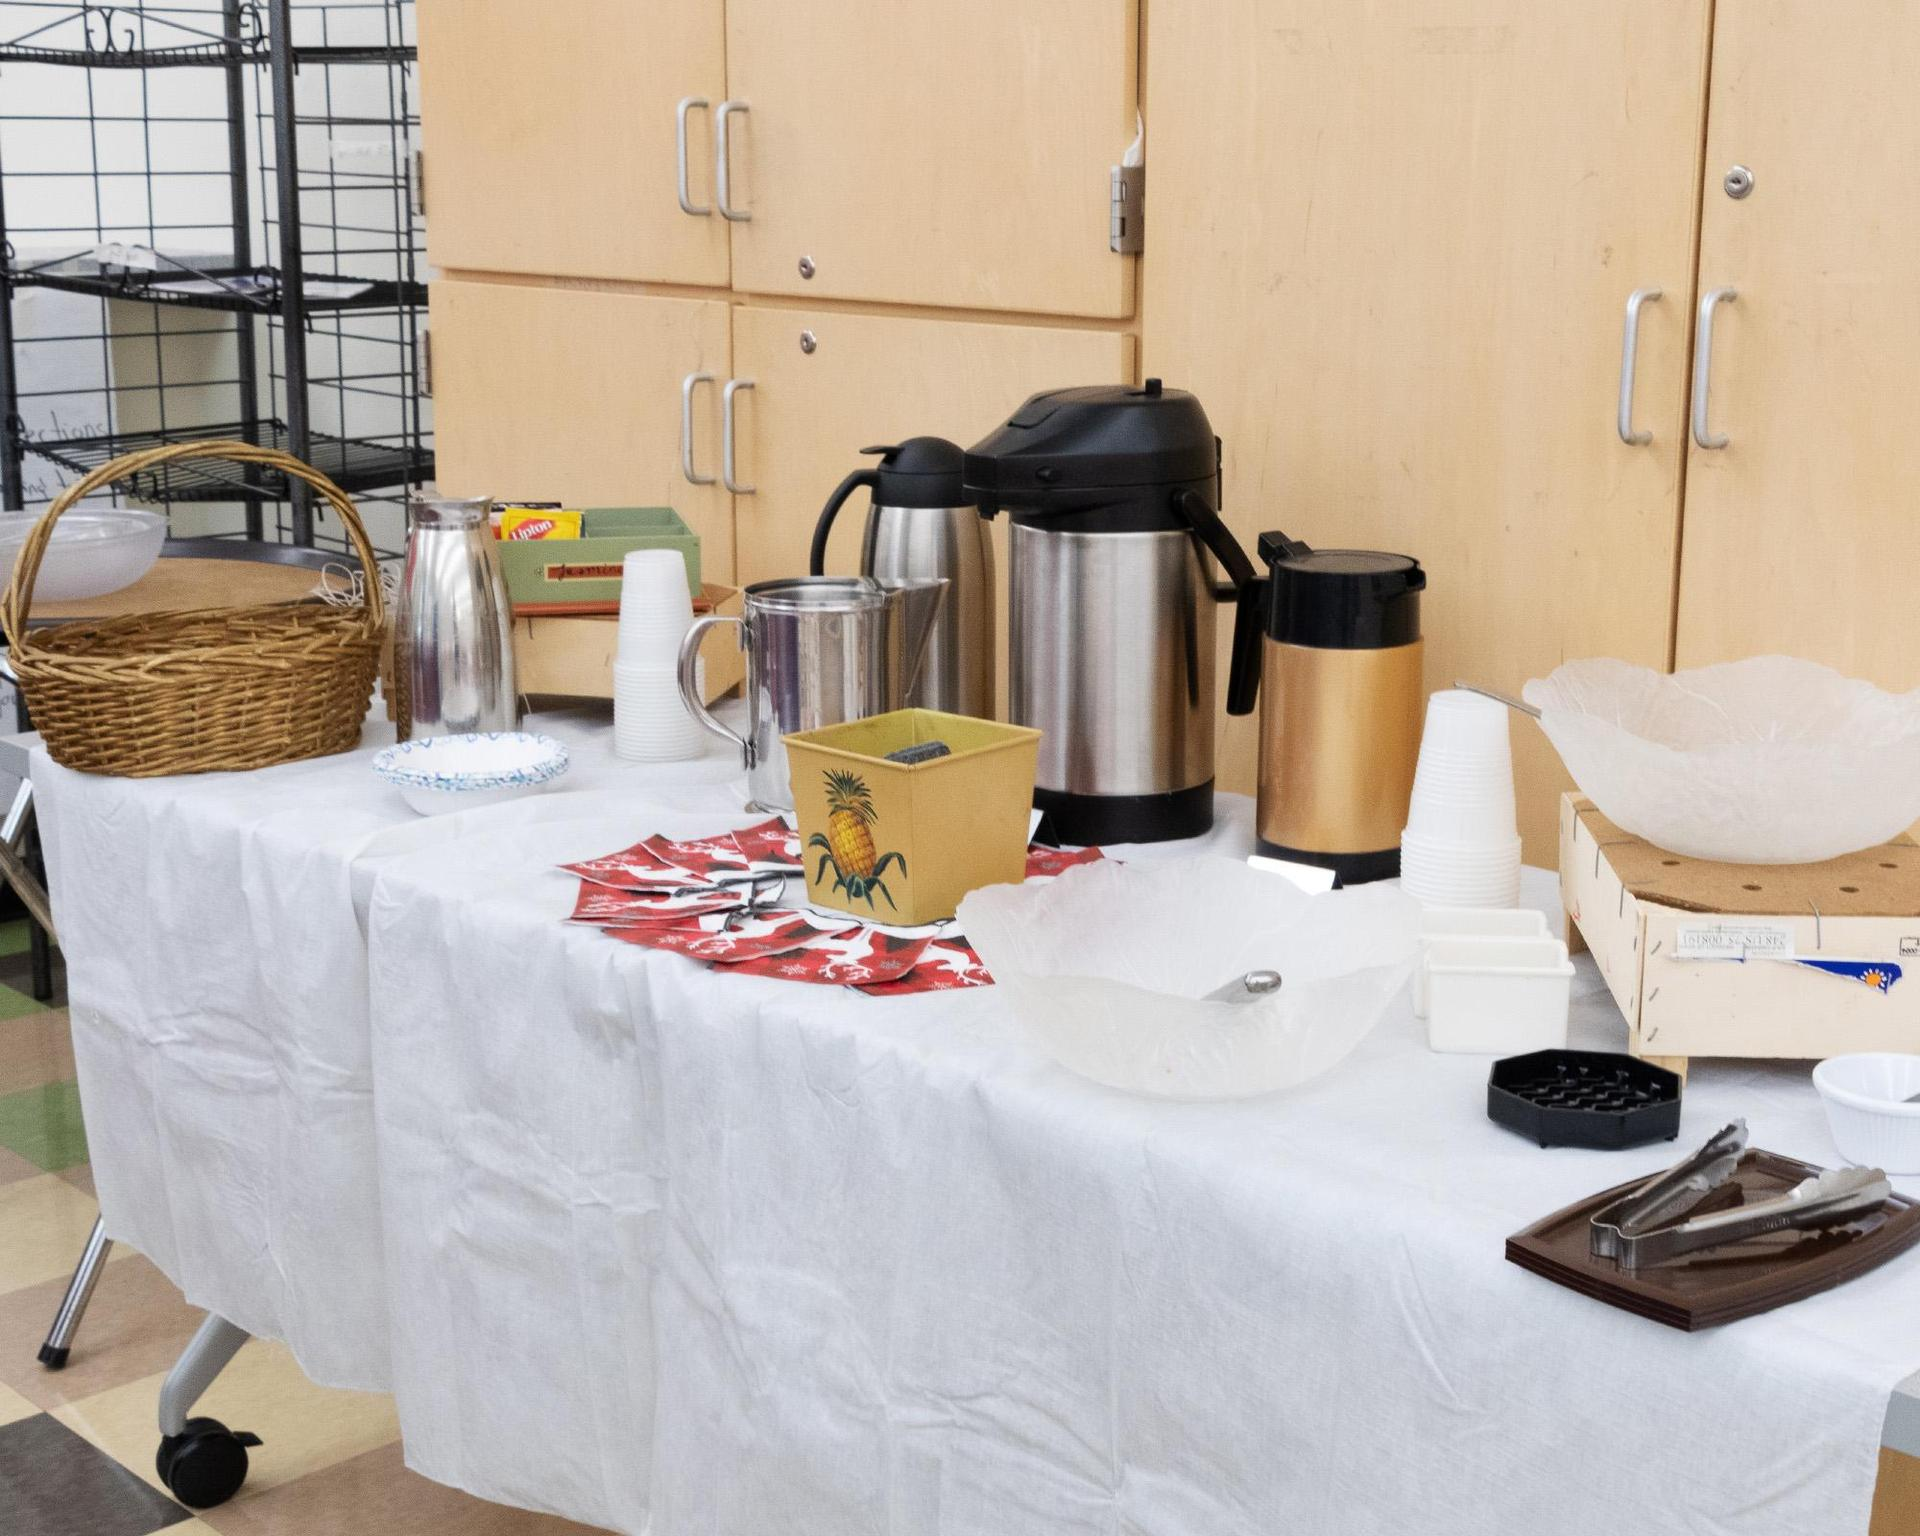 A table with a pot of coffee and accessories